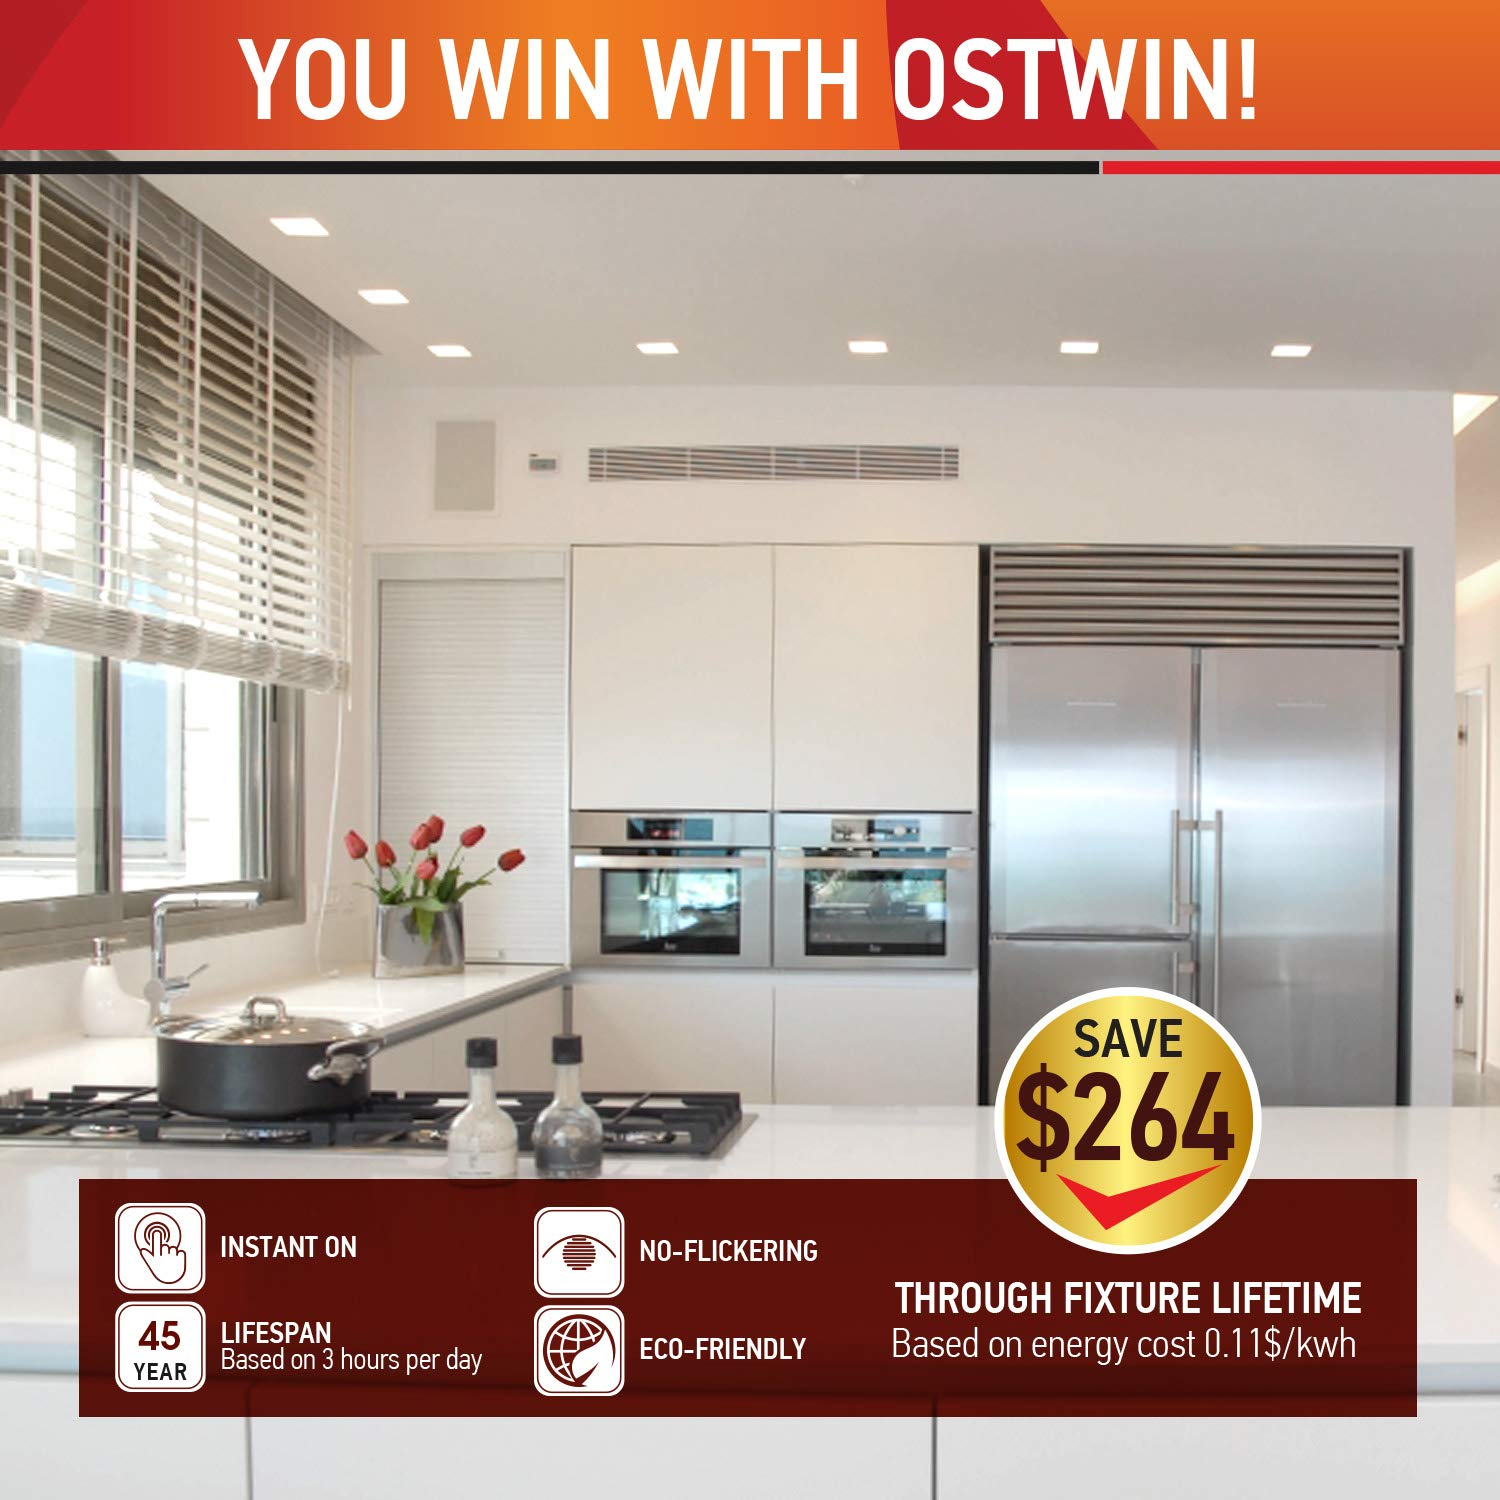 OSTWIN (4 Pack) 6 inch 12W (60 Watt Repl.) IC Rated LED Recessed Low Profile Slim Square Panel Light with Junction Box, Dimmable, 5000K Daylight 840 Lm. No Can Needed ETL & Energy Star Listed by OSTWIN (Image #6)